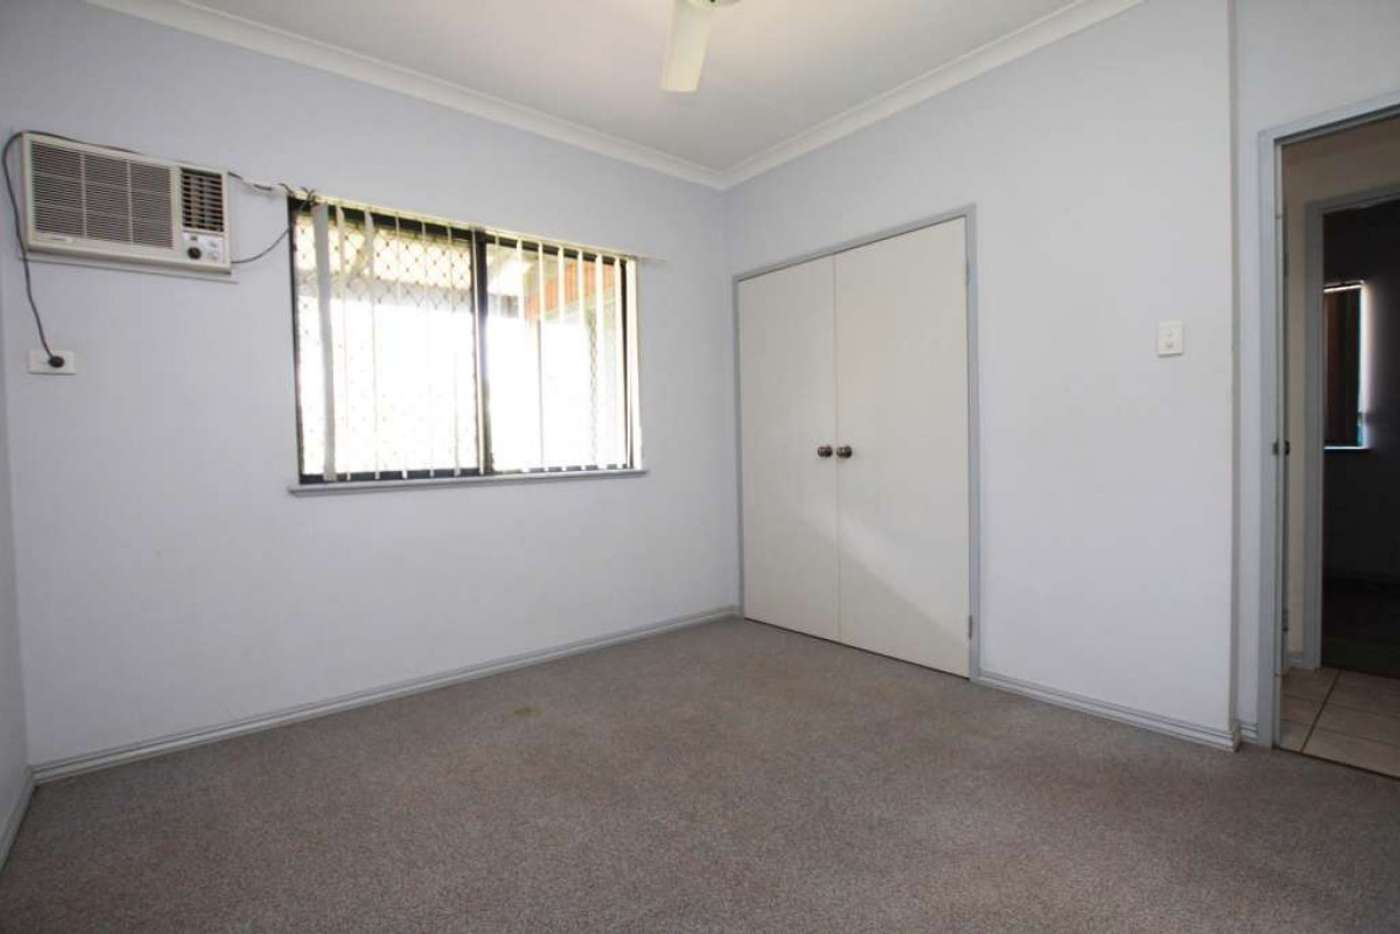 Seventh view of Homely house listing, 8A Plum Court, Kununurra WA 6743